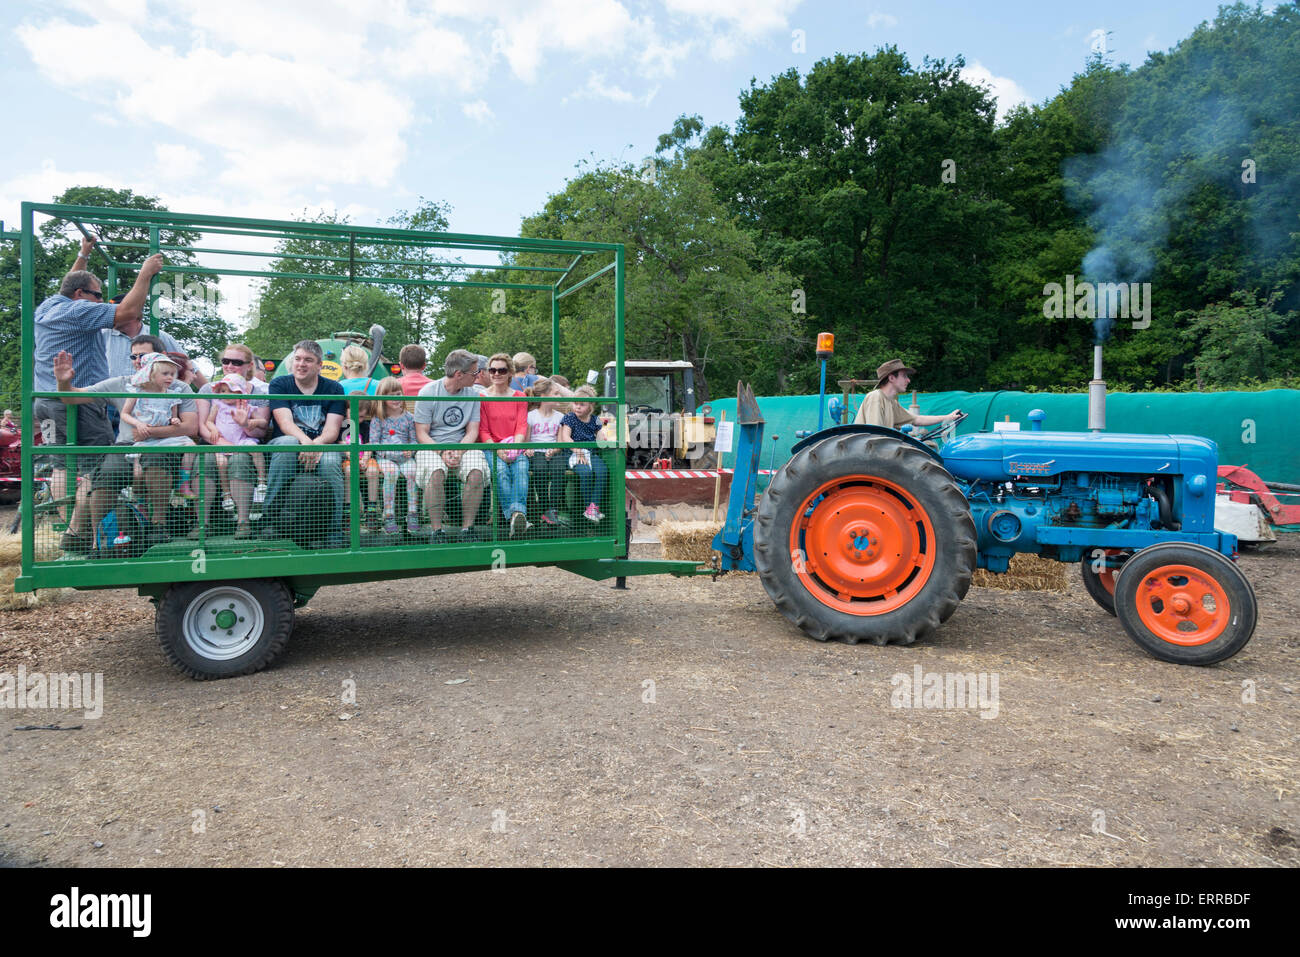 Tractor Trailer Stock : Visitors enjoy tractor and trailer rides at pierrepoint